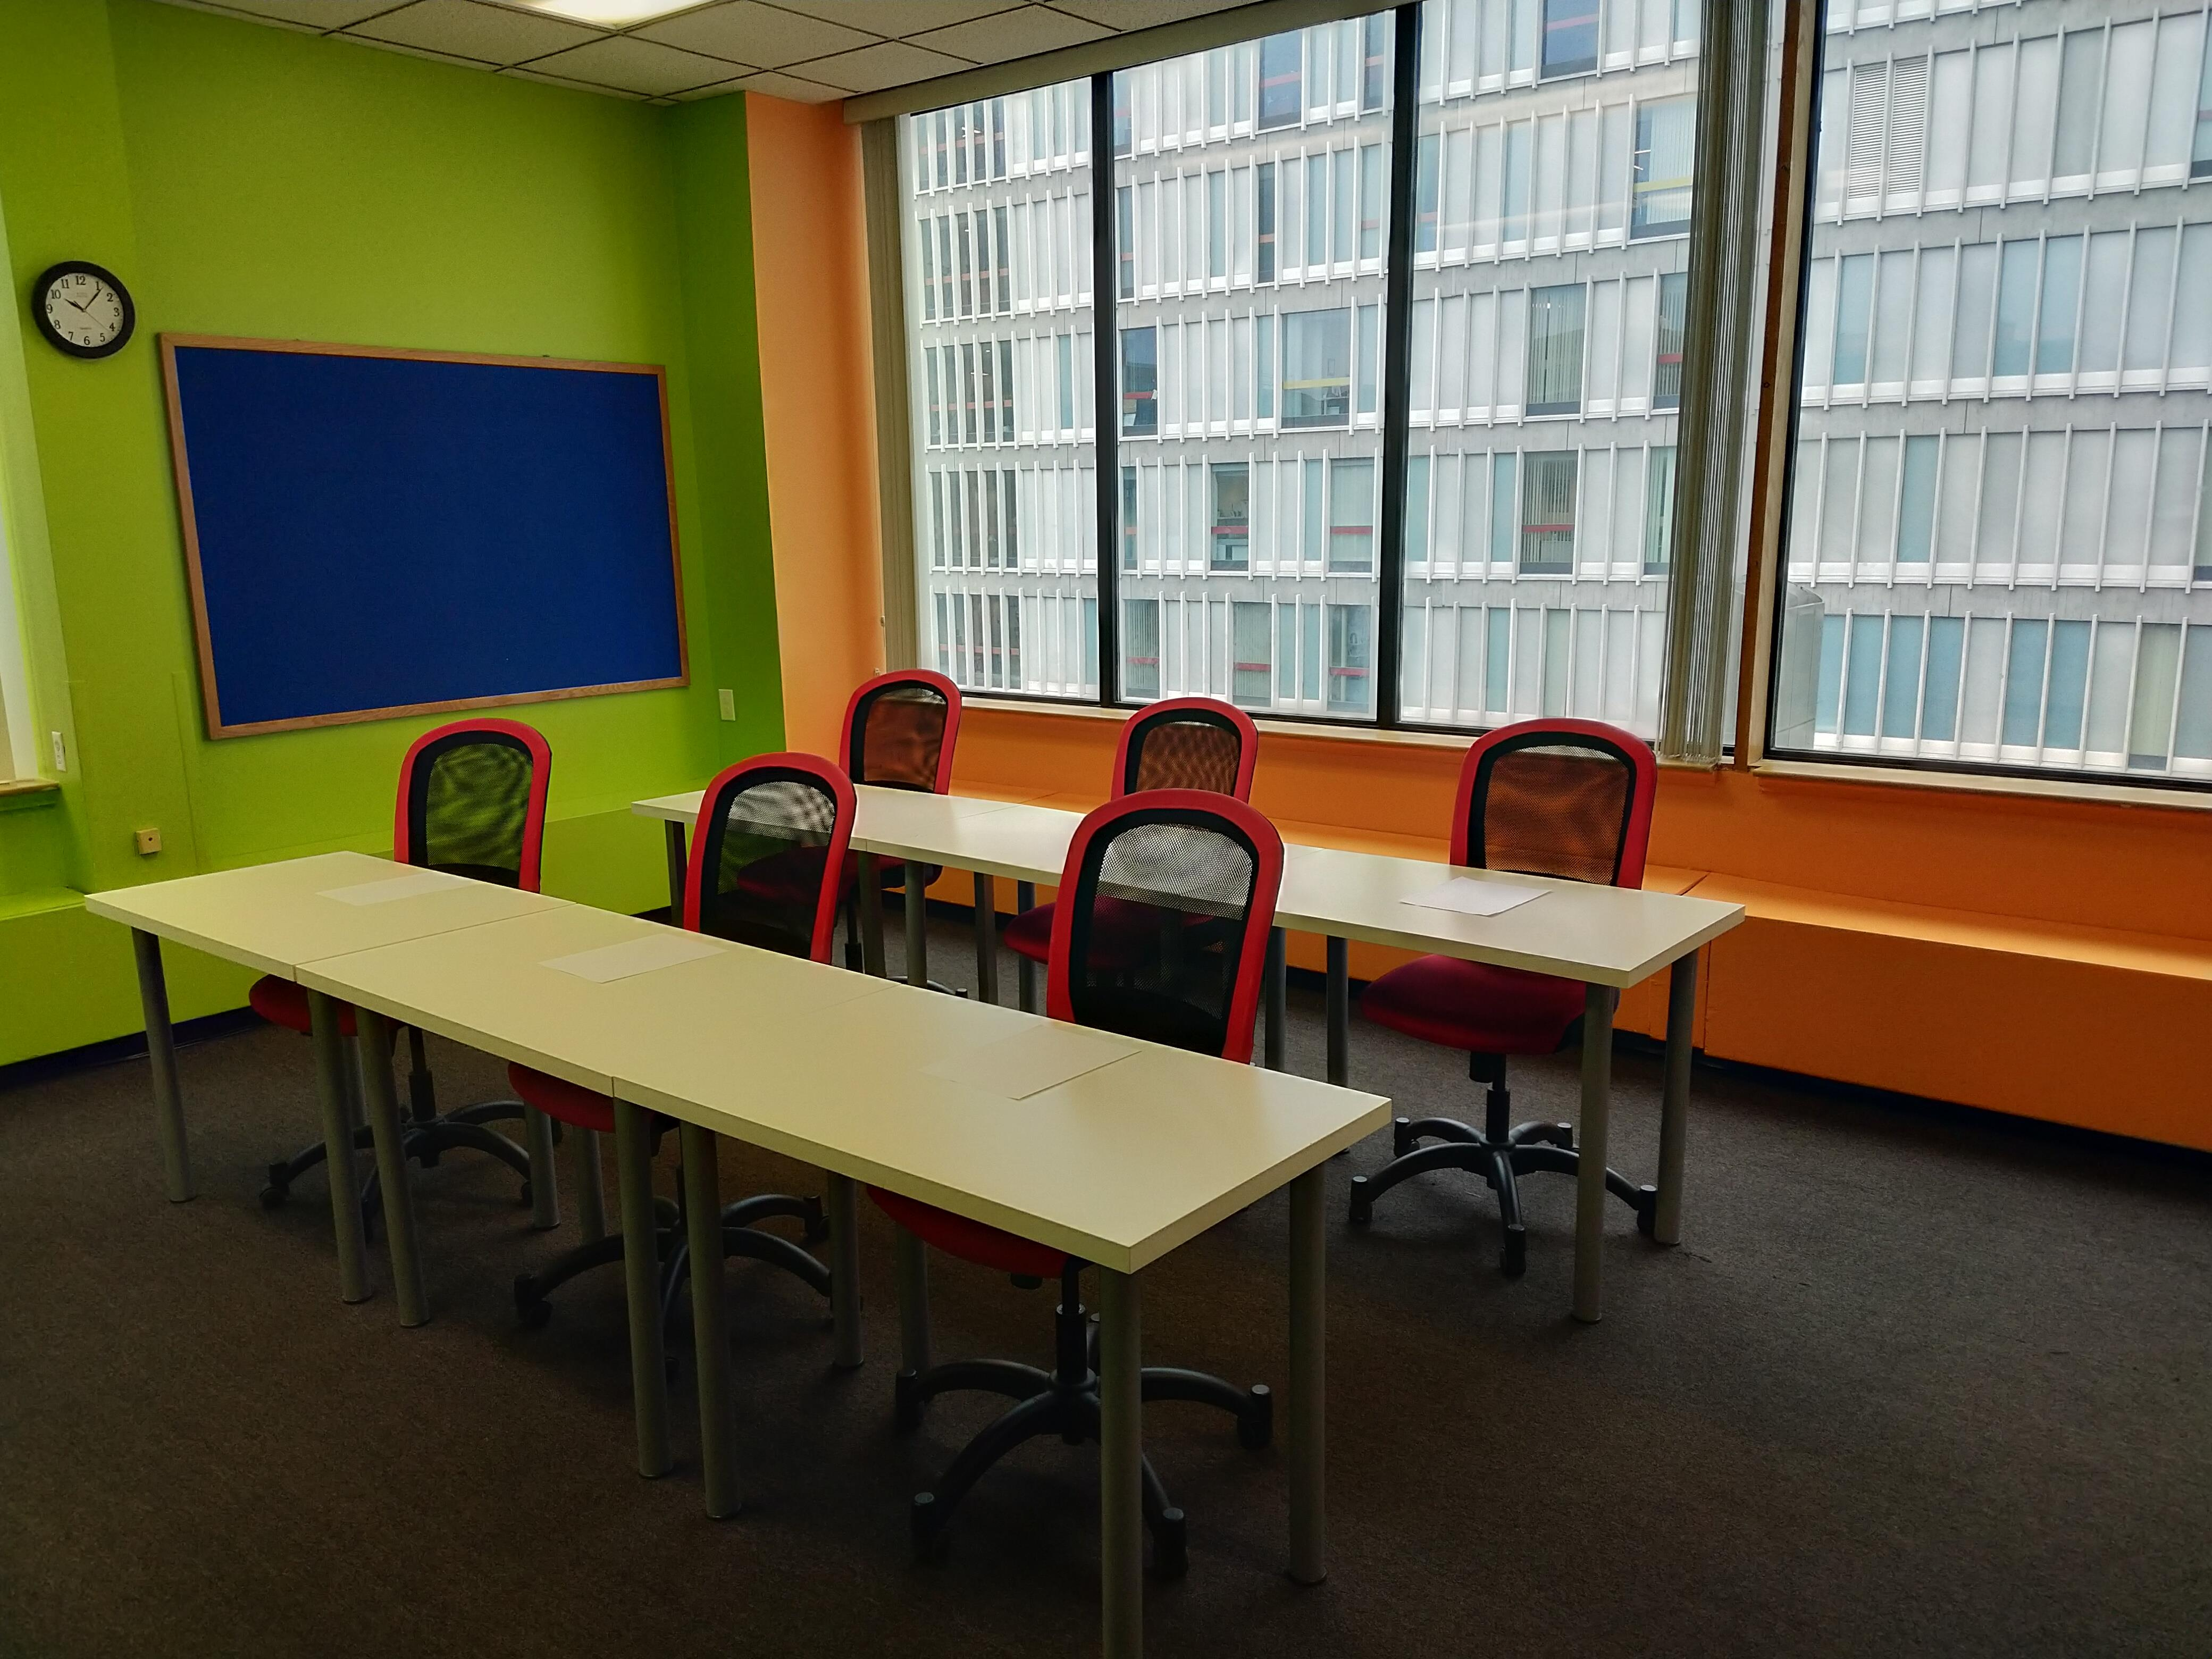 Harvard Square Office Space - Room for 10